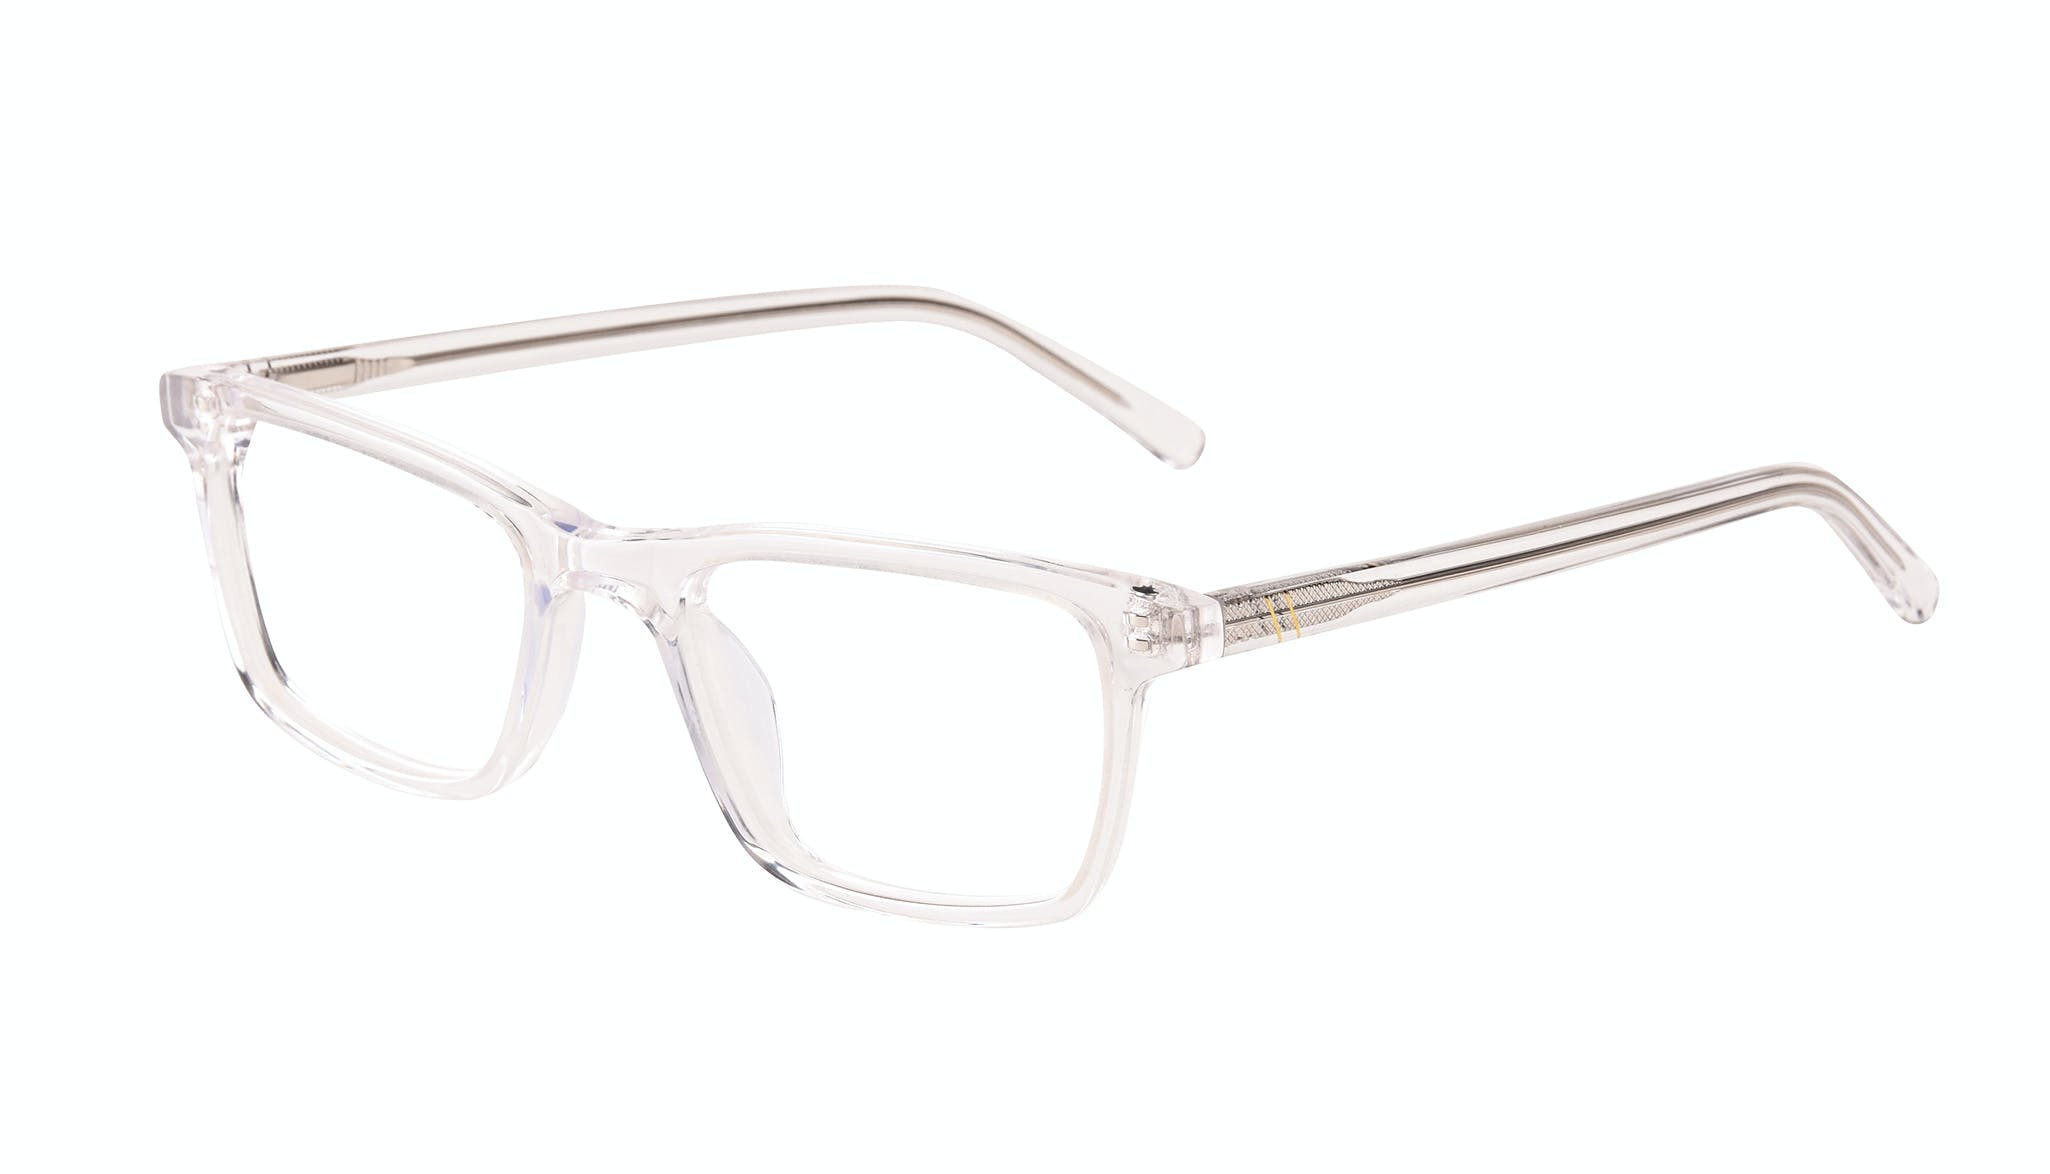 Affordable Fashion Glasses Rectangle Eyeglasses Men Henri SML Clear Tilt